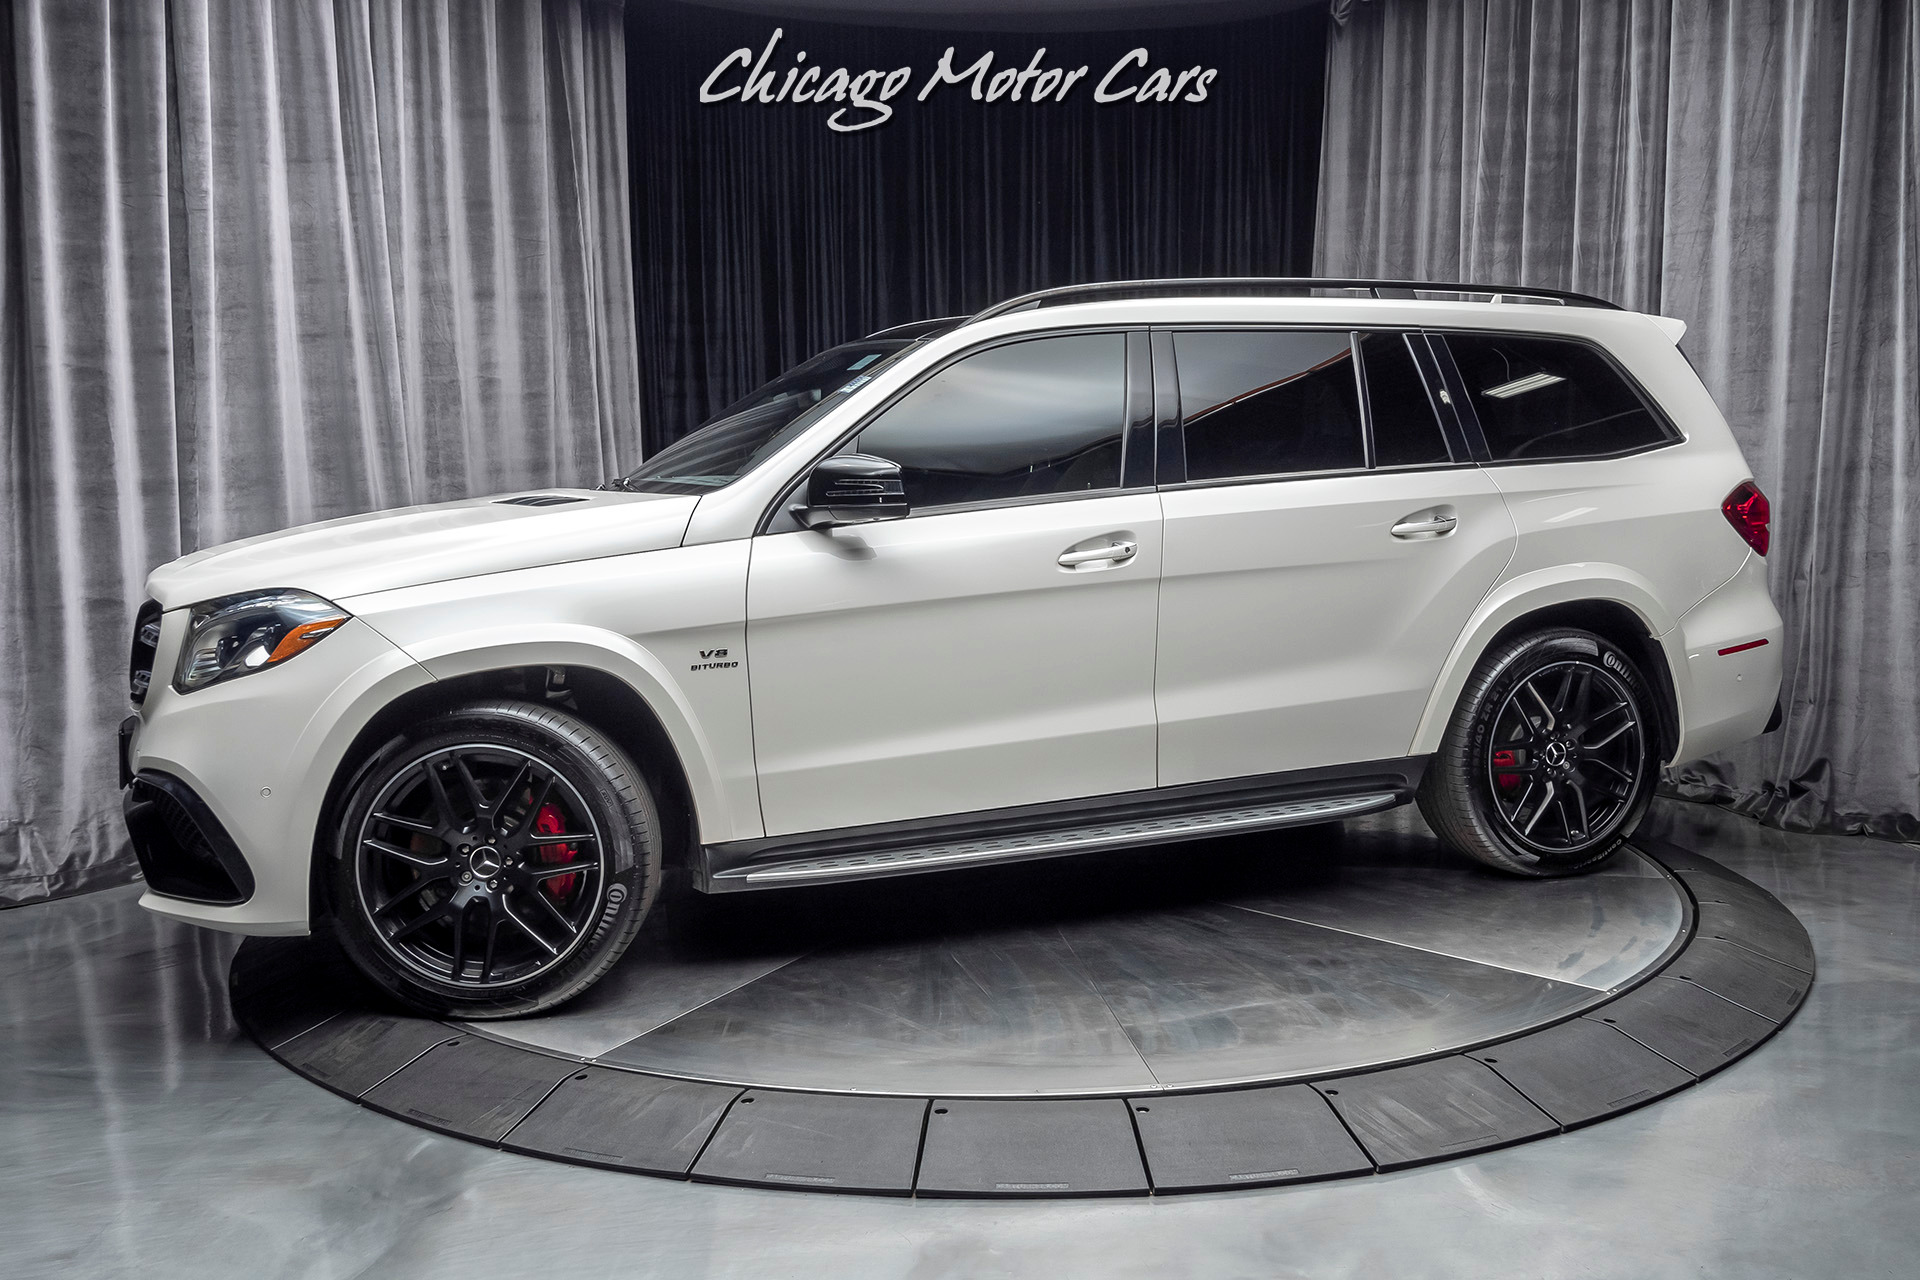 Used 2019 Mercedes Benz Gls63 Amg Suv Matte Black Amg Wheels Low Miles For Sale Special Pricing Chicago Motor Cars Stock 17037